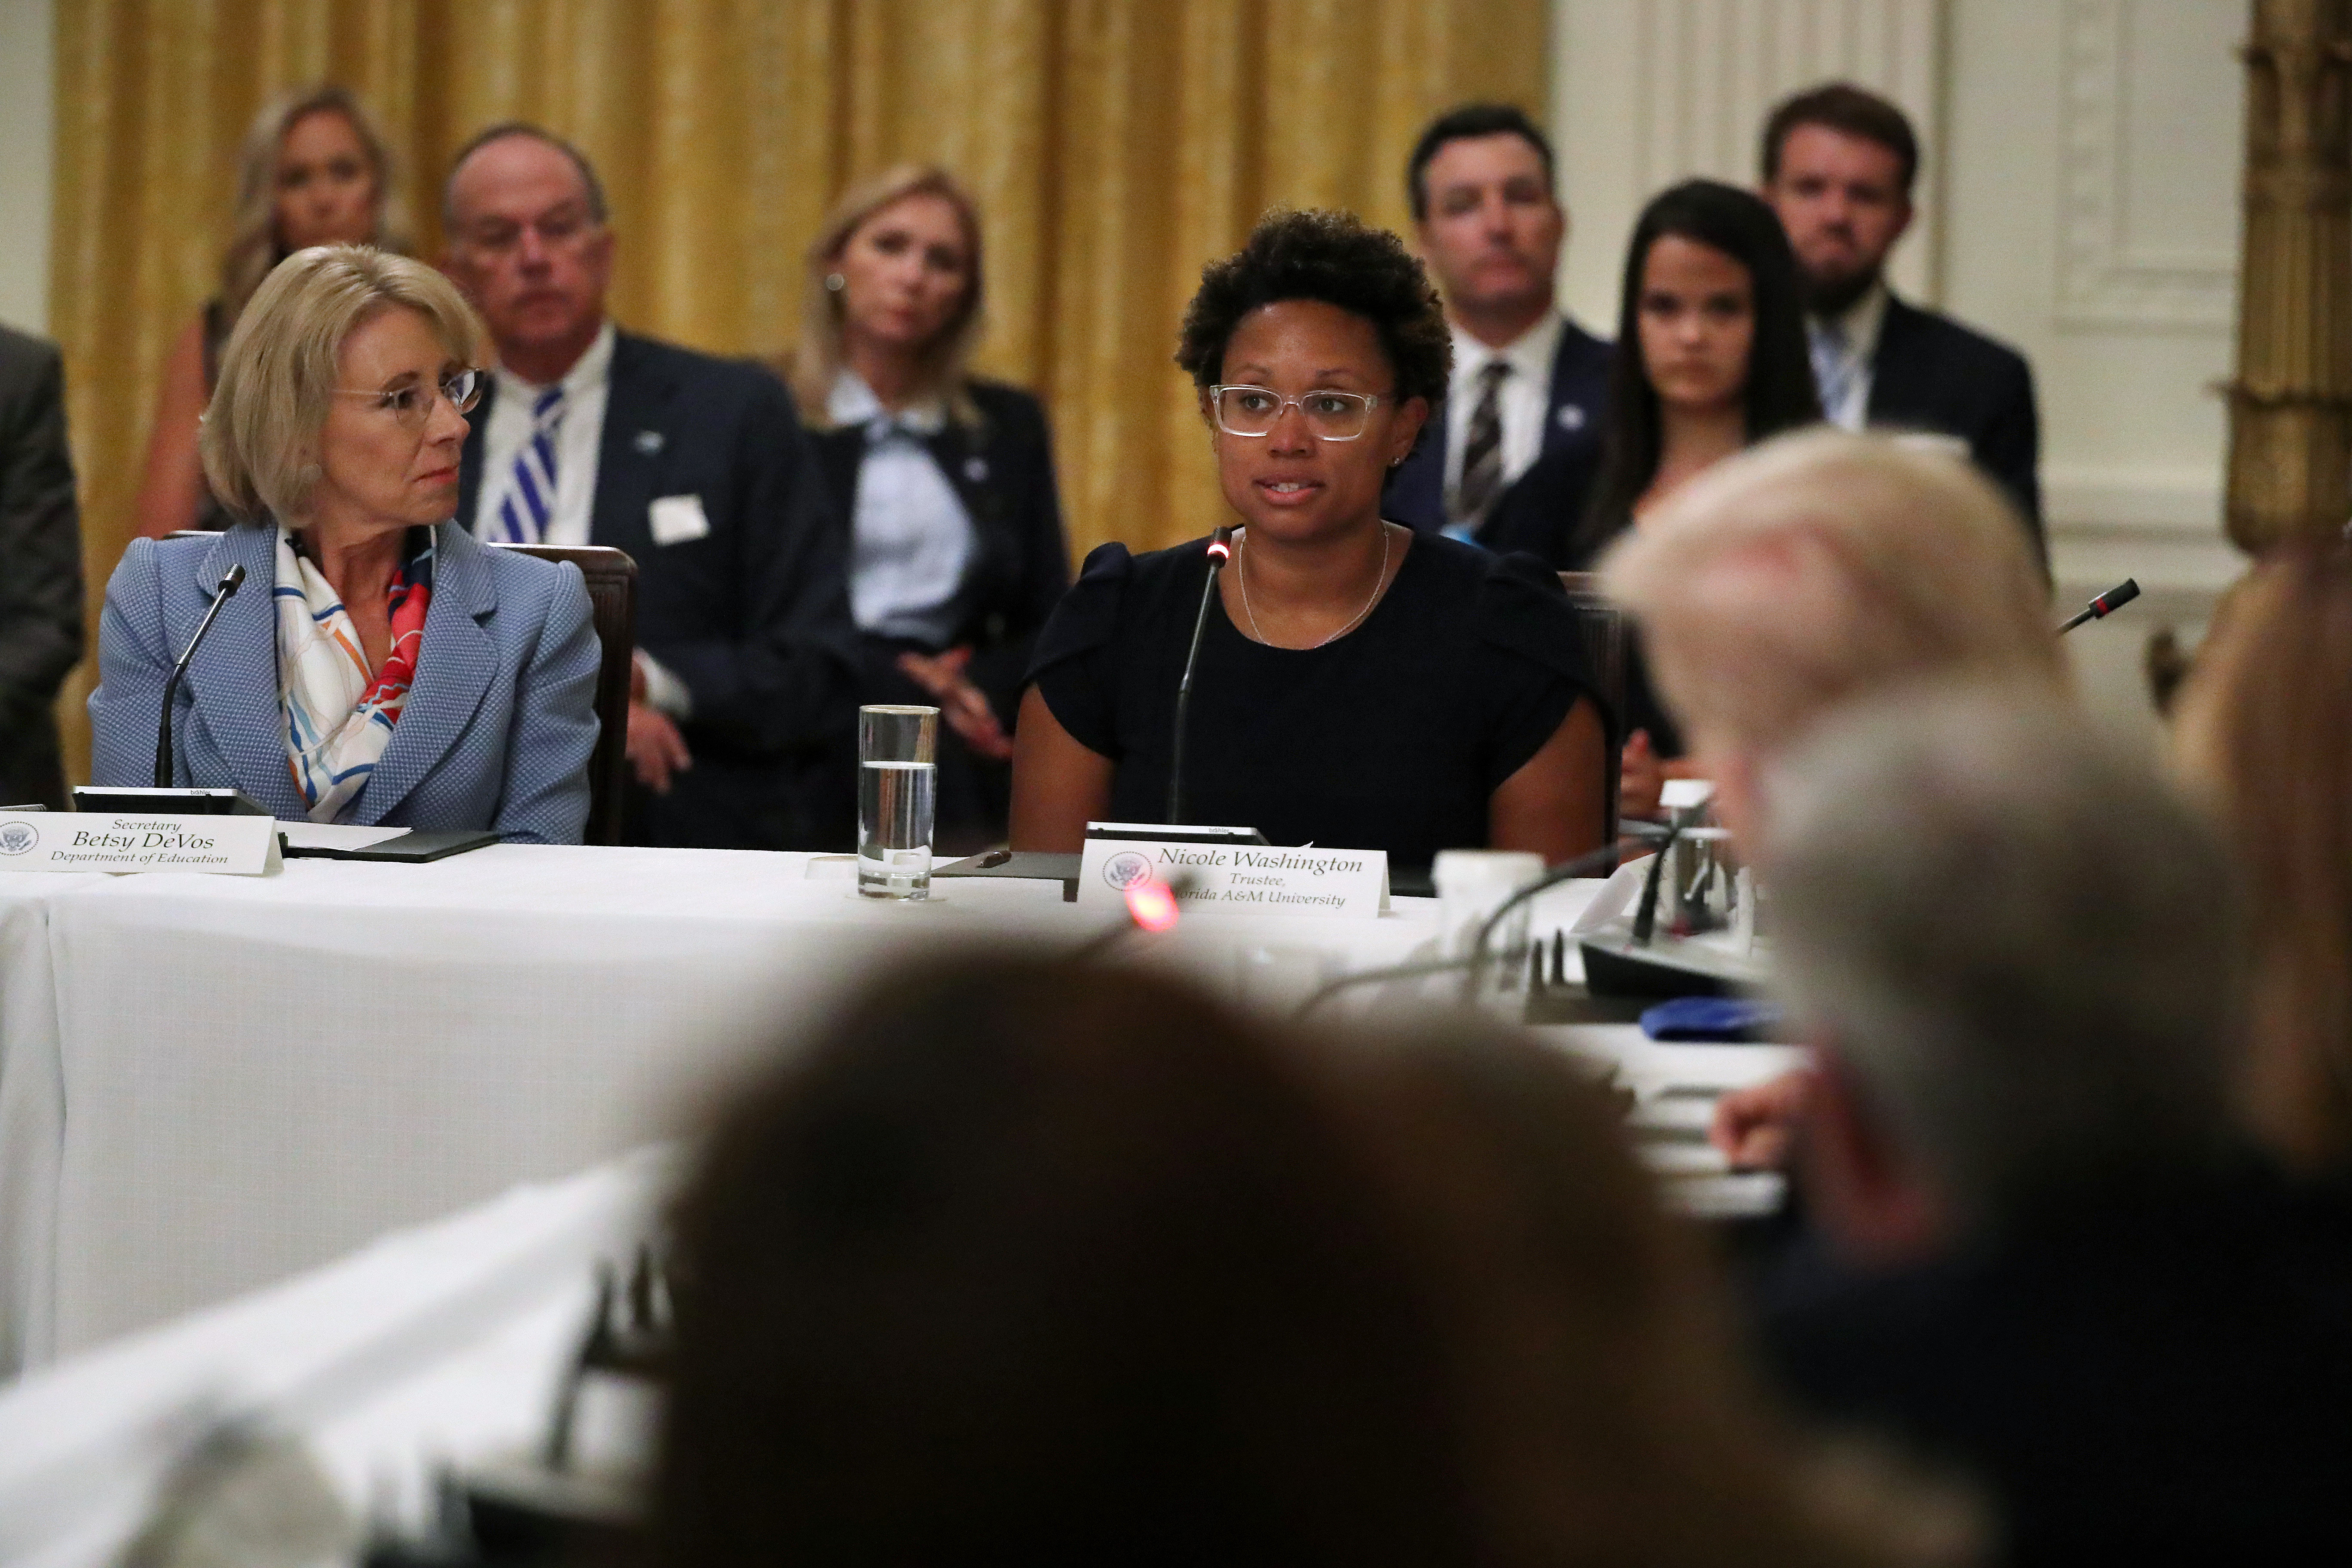 WASHINGTON, DC - JULY 07: Education Secretary Betsy DeVos (L) and Nicole Washington, Trustee, Florida A&M University Trustee Nicole Washington participate in a meeting hosted by U.S. President Donald Trump about how to safely re-open schools during the novel coronavirus pandemic in the East Room at the White House July 07, 2020 in Washington, DC. As the number of COVID-19 cases surge across southern states like Florida, Texas, Louisiana, South Carolina and Arizona, Trump joined with guests from across the country to discuss how to responsibly return to the classroom. (Photo by Chip Somodevilla/Getty Images)